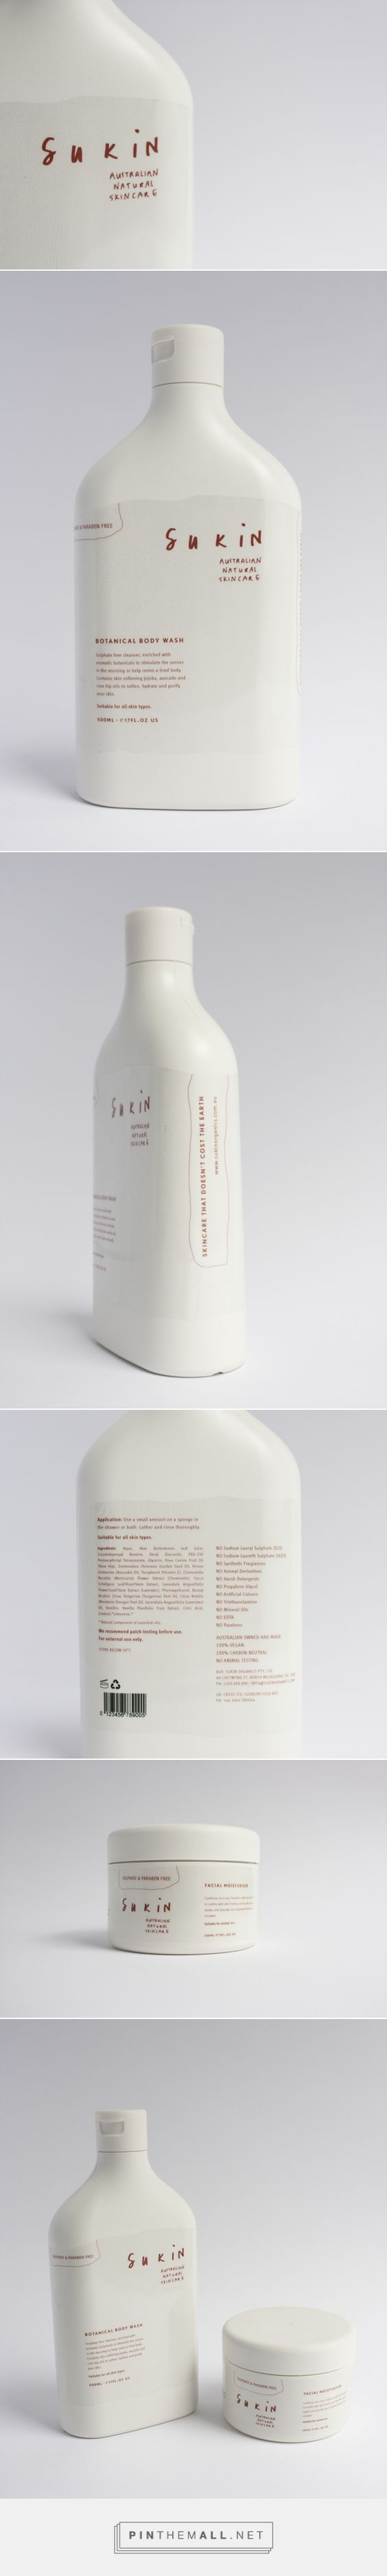 Sukin Skincare is an Australian natural personal care company whose products boast only the best ingredients nature has to offer. | Package Designed by Danielle Fritz: